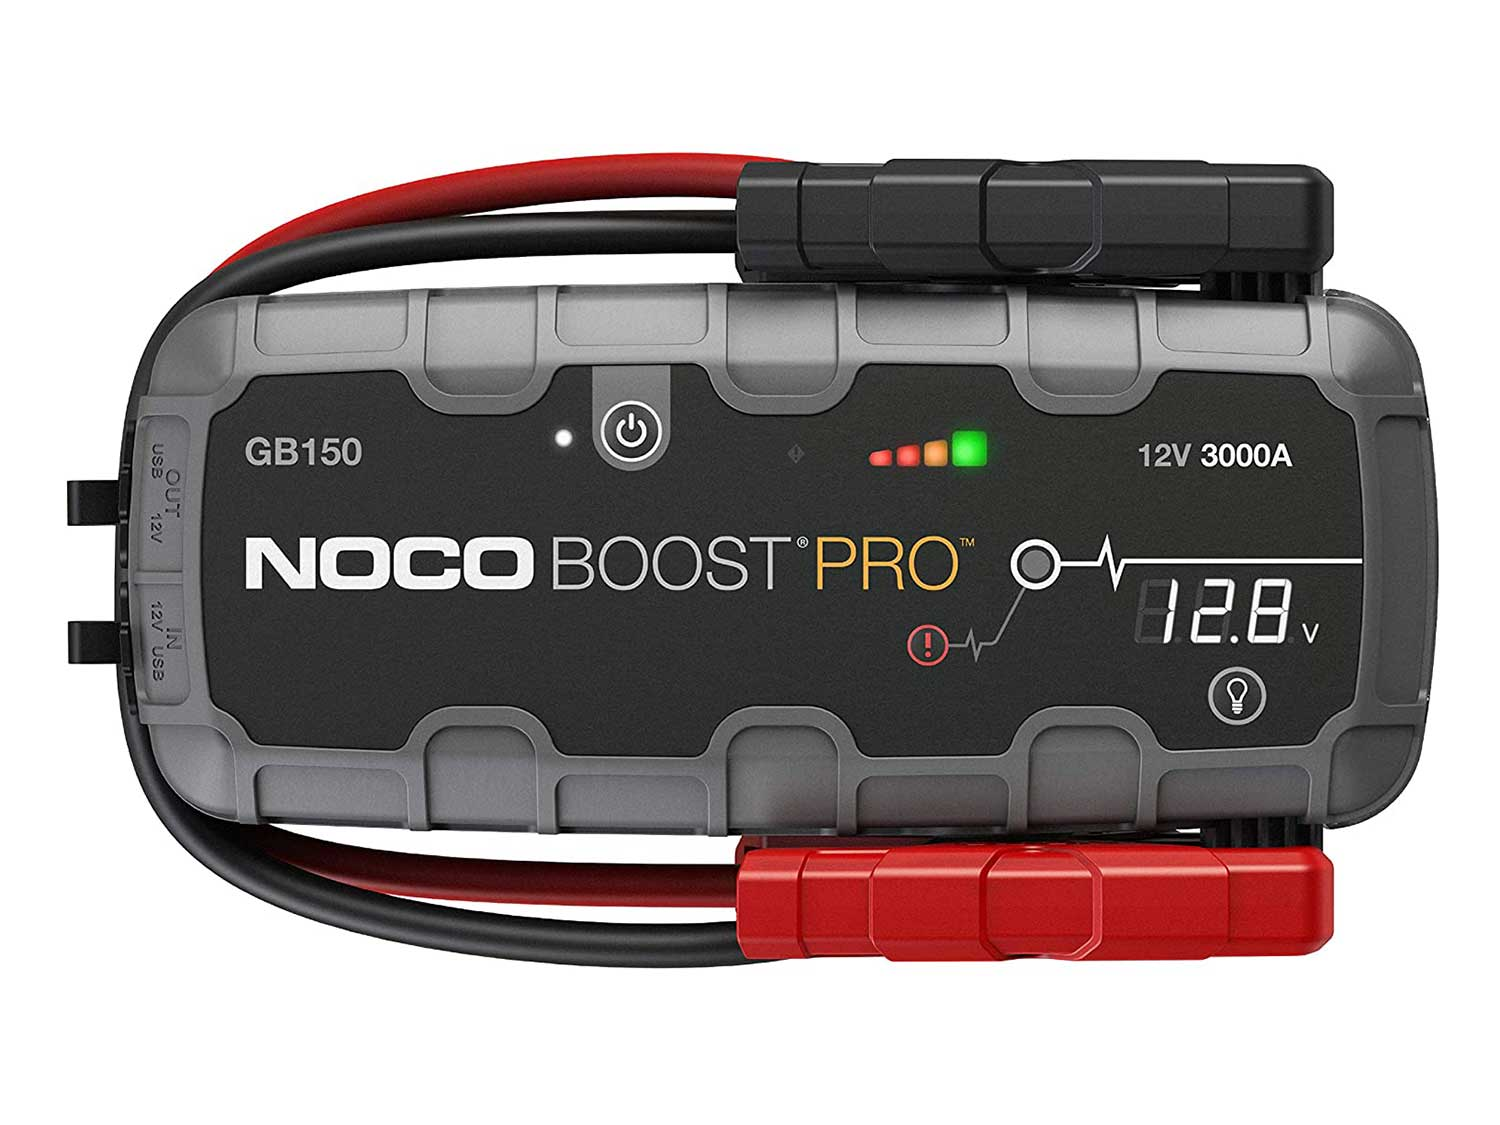 NOCO Boost Pro GB150 3000 Amp 12-Volt UltraSafe Portable Lithium Jump Starter, Car Battery Booster Pack, And Jump Leads For Up To 9-Liter Gasoline And 7-Liter Diesel Engines